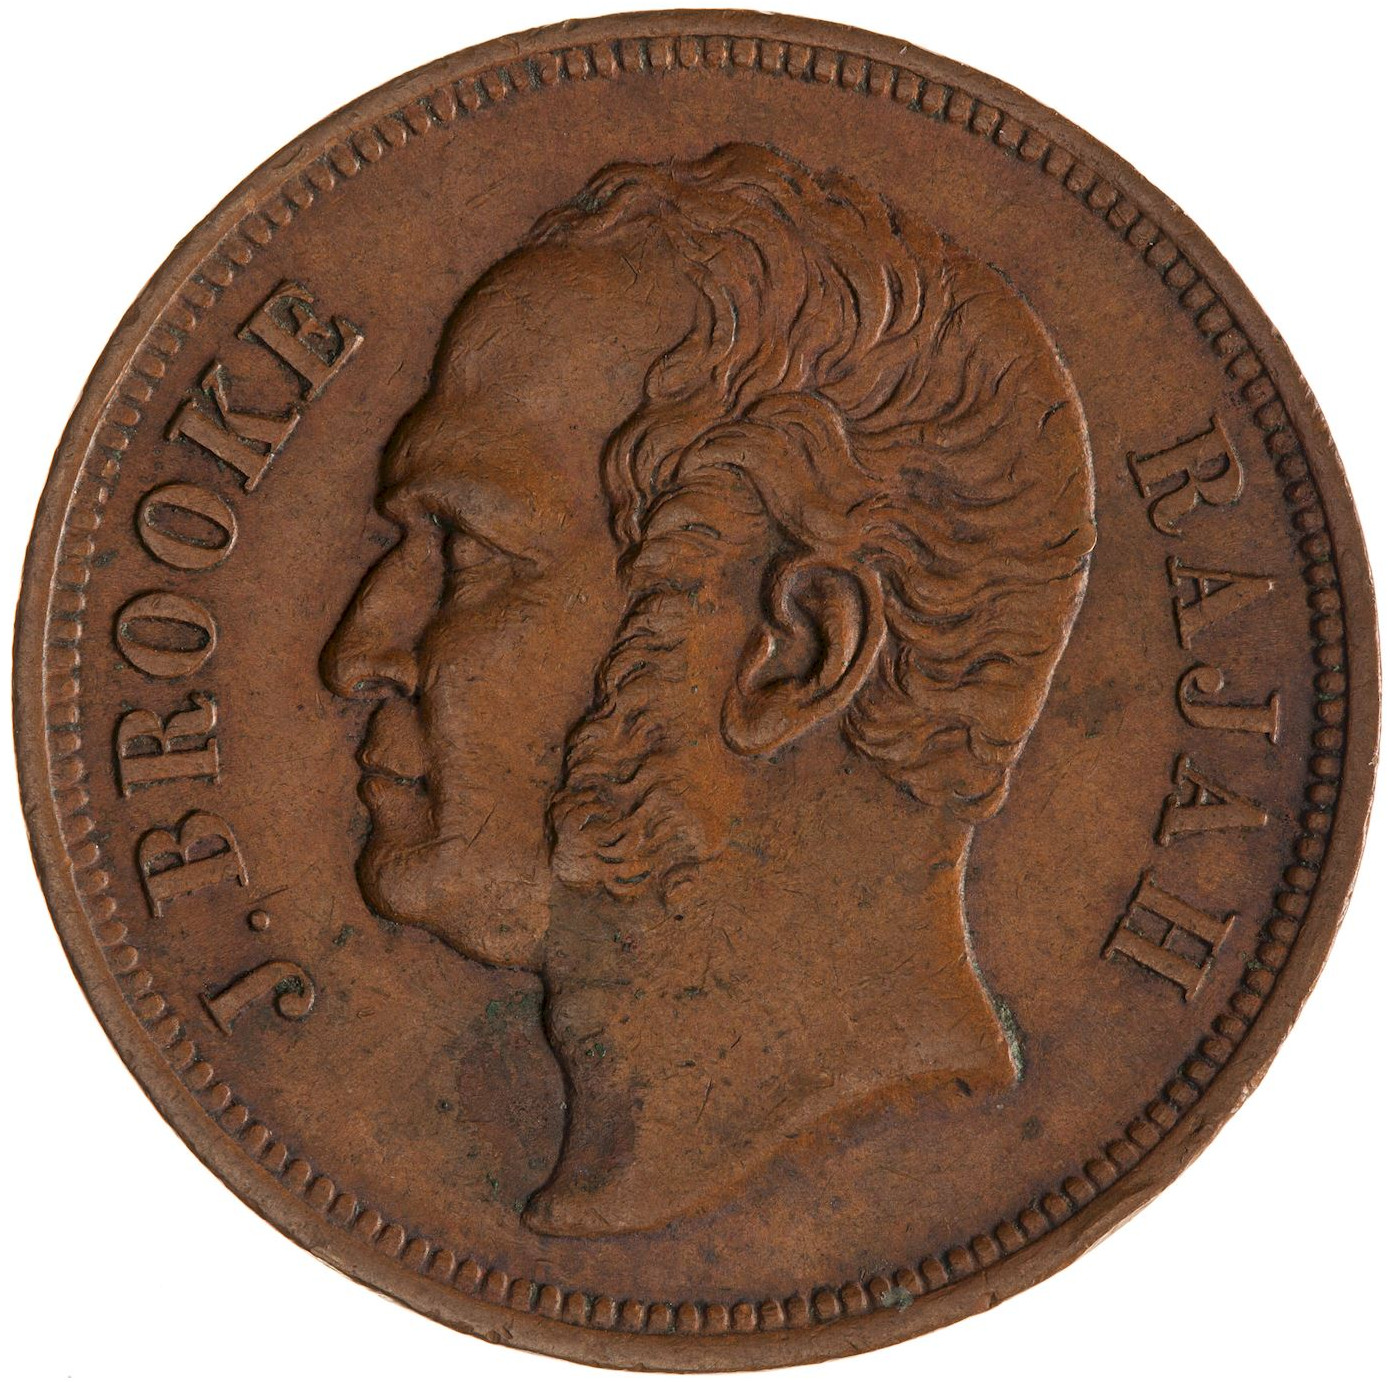 One Cent: Photo Coin - 1 Cent, Sarawak, 1863